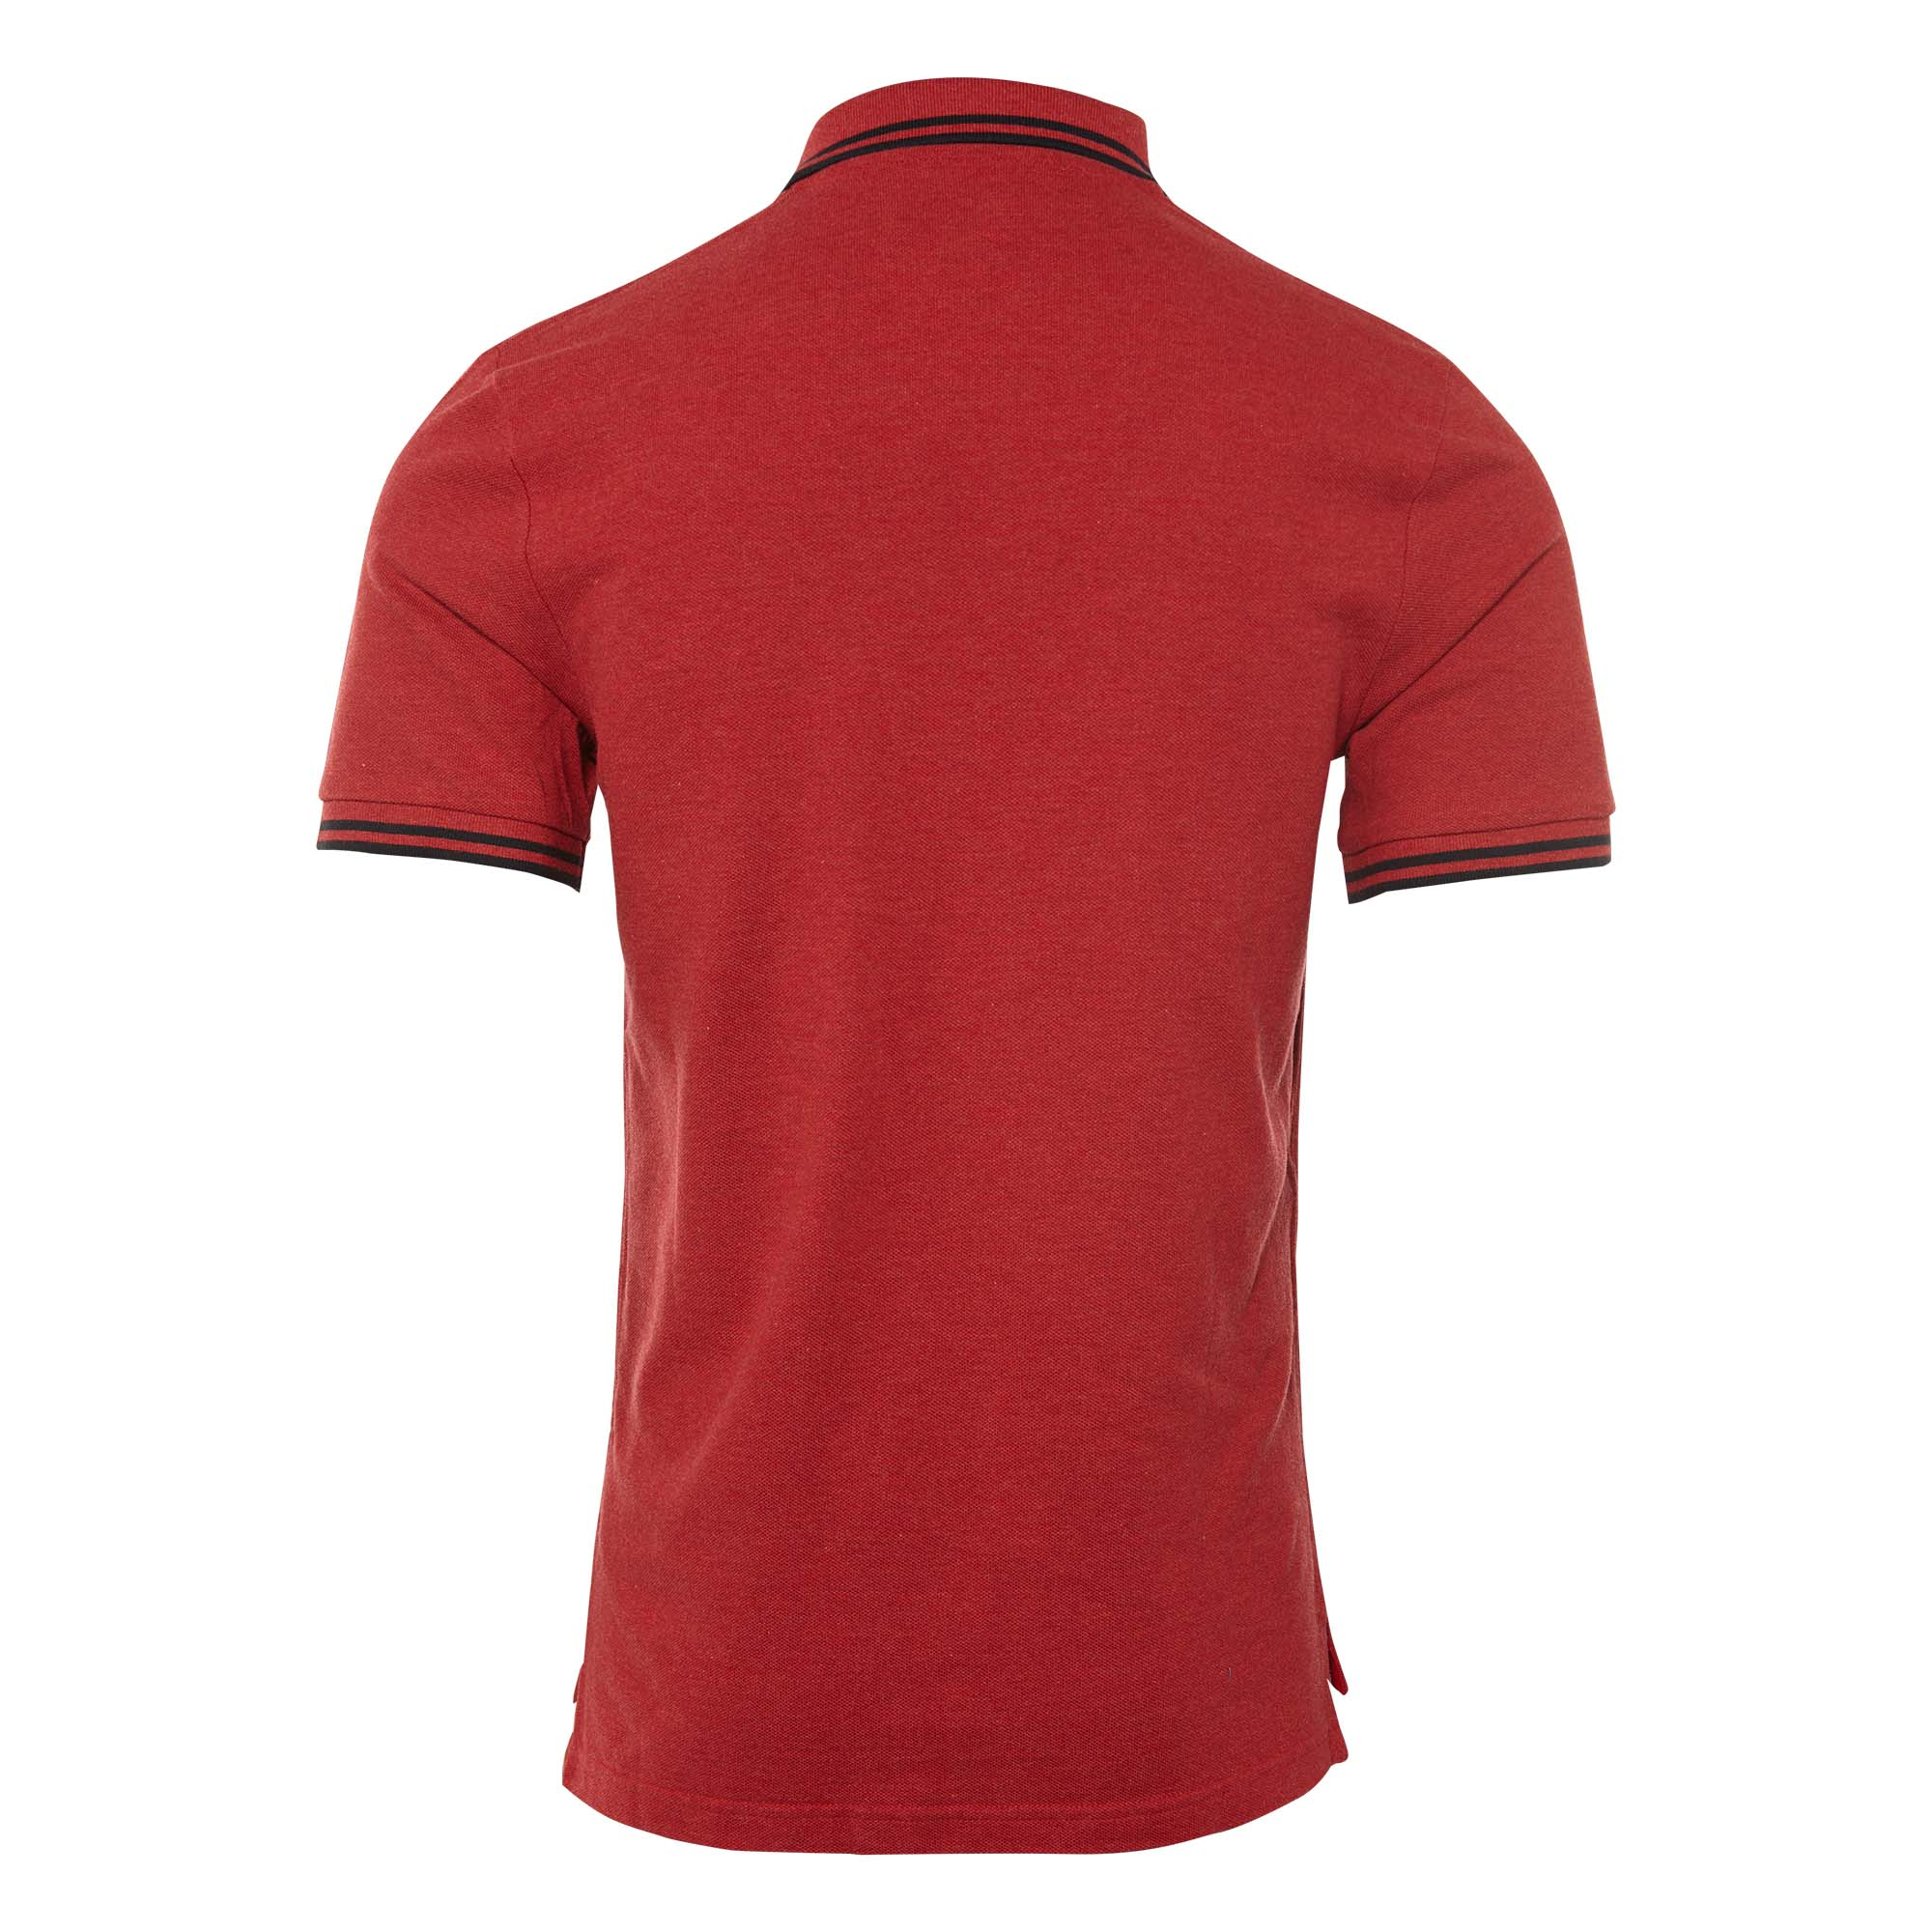 7f8254a171e Details about Nike Mens Manchester United Polo T-Shirt 478175-650